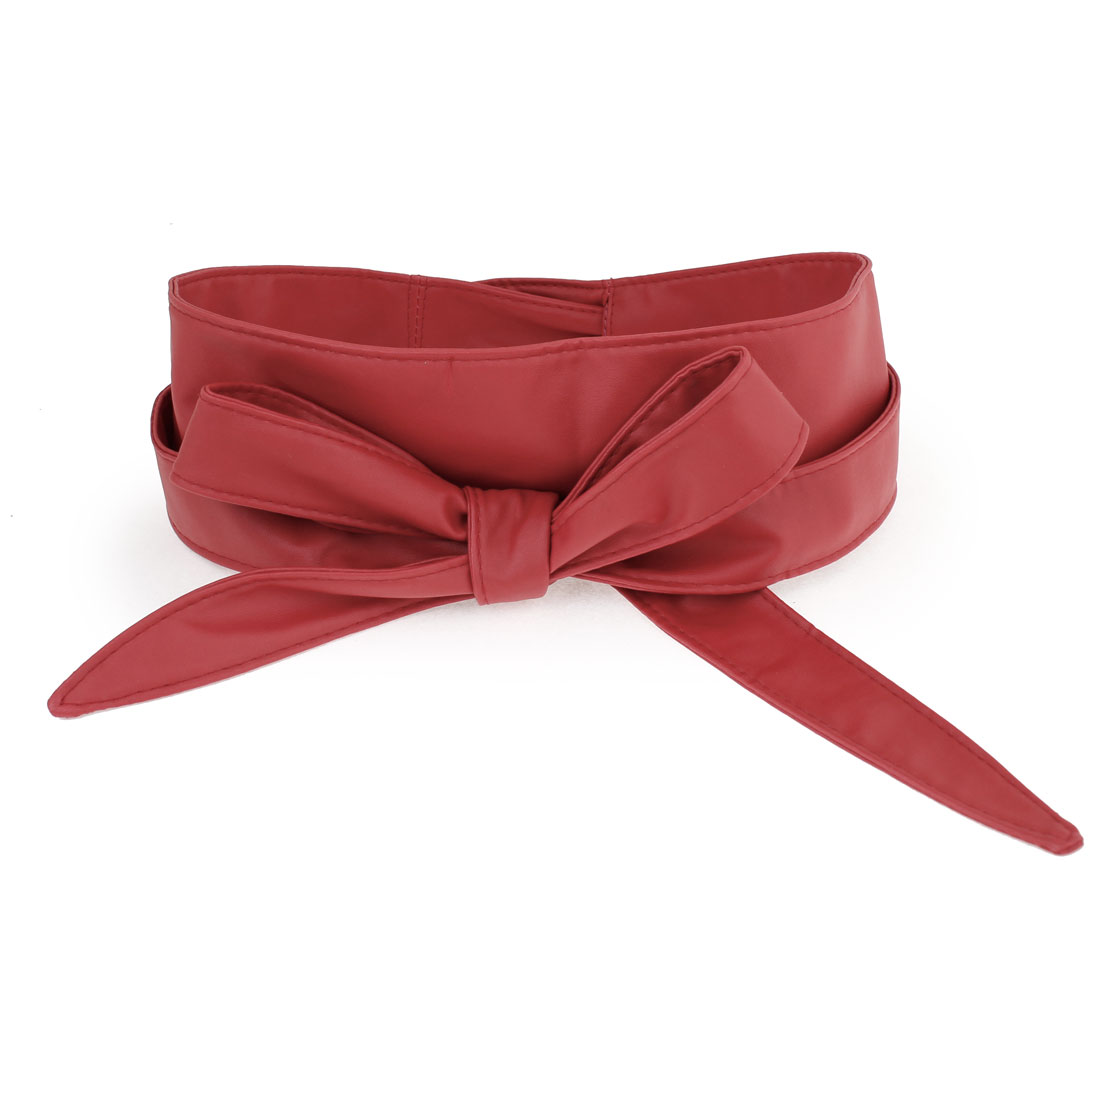 "90"" Long Red Soft Faux Leather Self Tie Style Waist Belt for Lady"